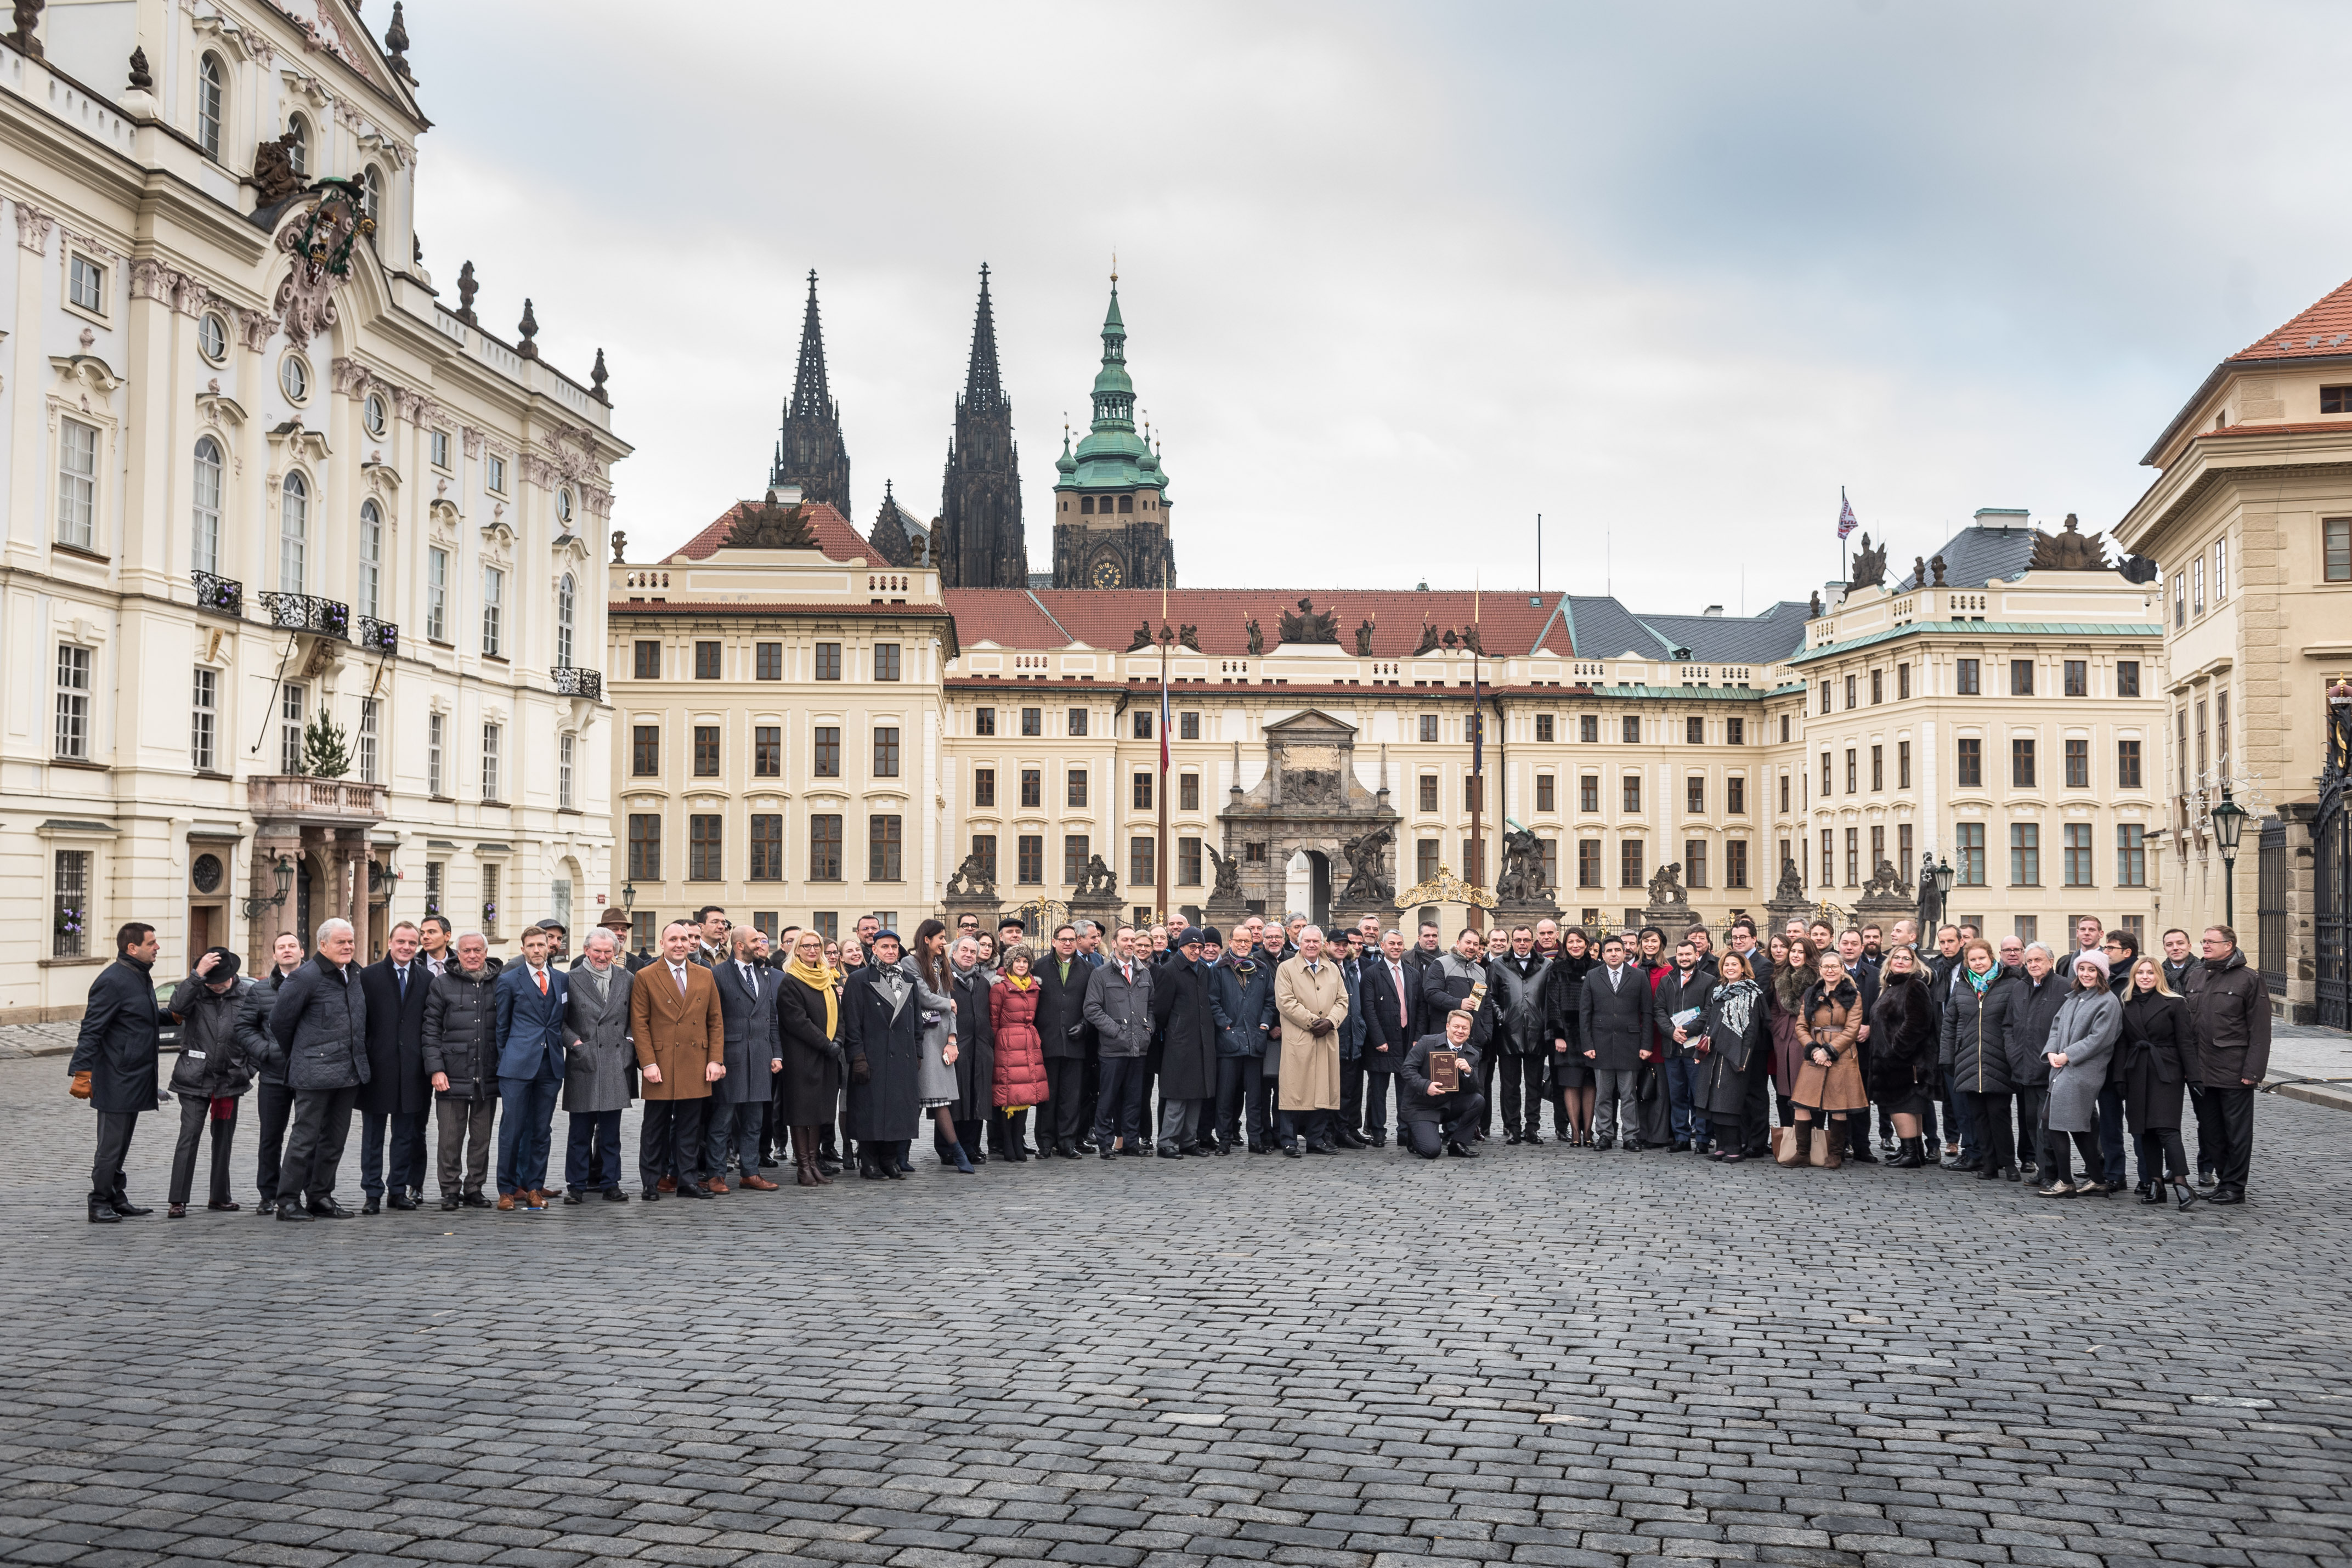 Prague Rules were officially launched